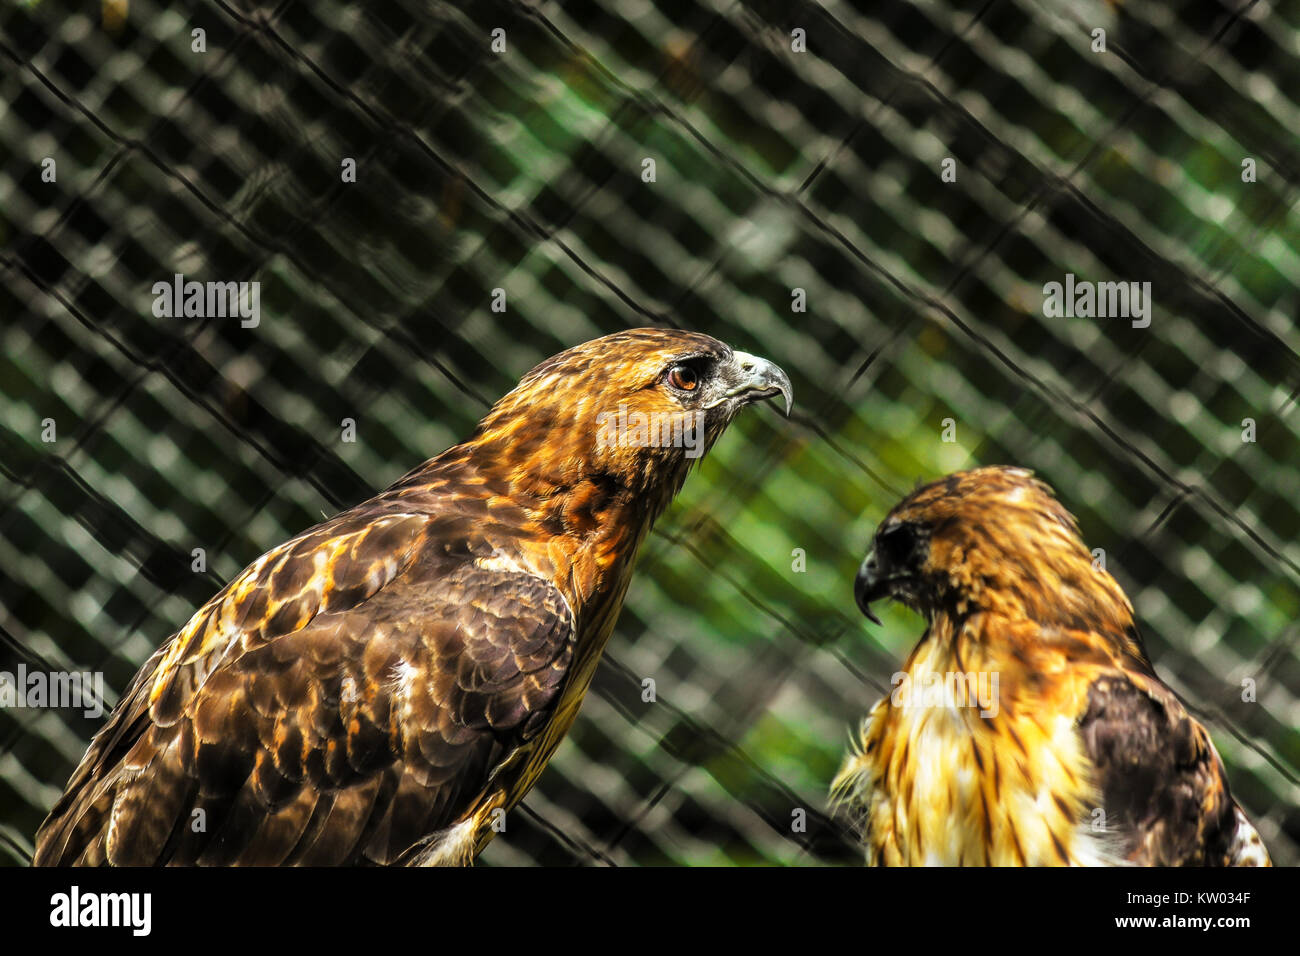 Two Red Tailed Hawks Buteo Jamaicansis In An Enclosure At The Stock Photo Alamy